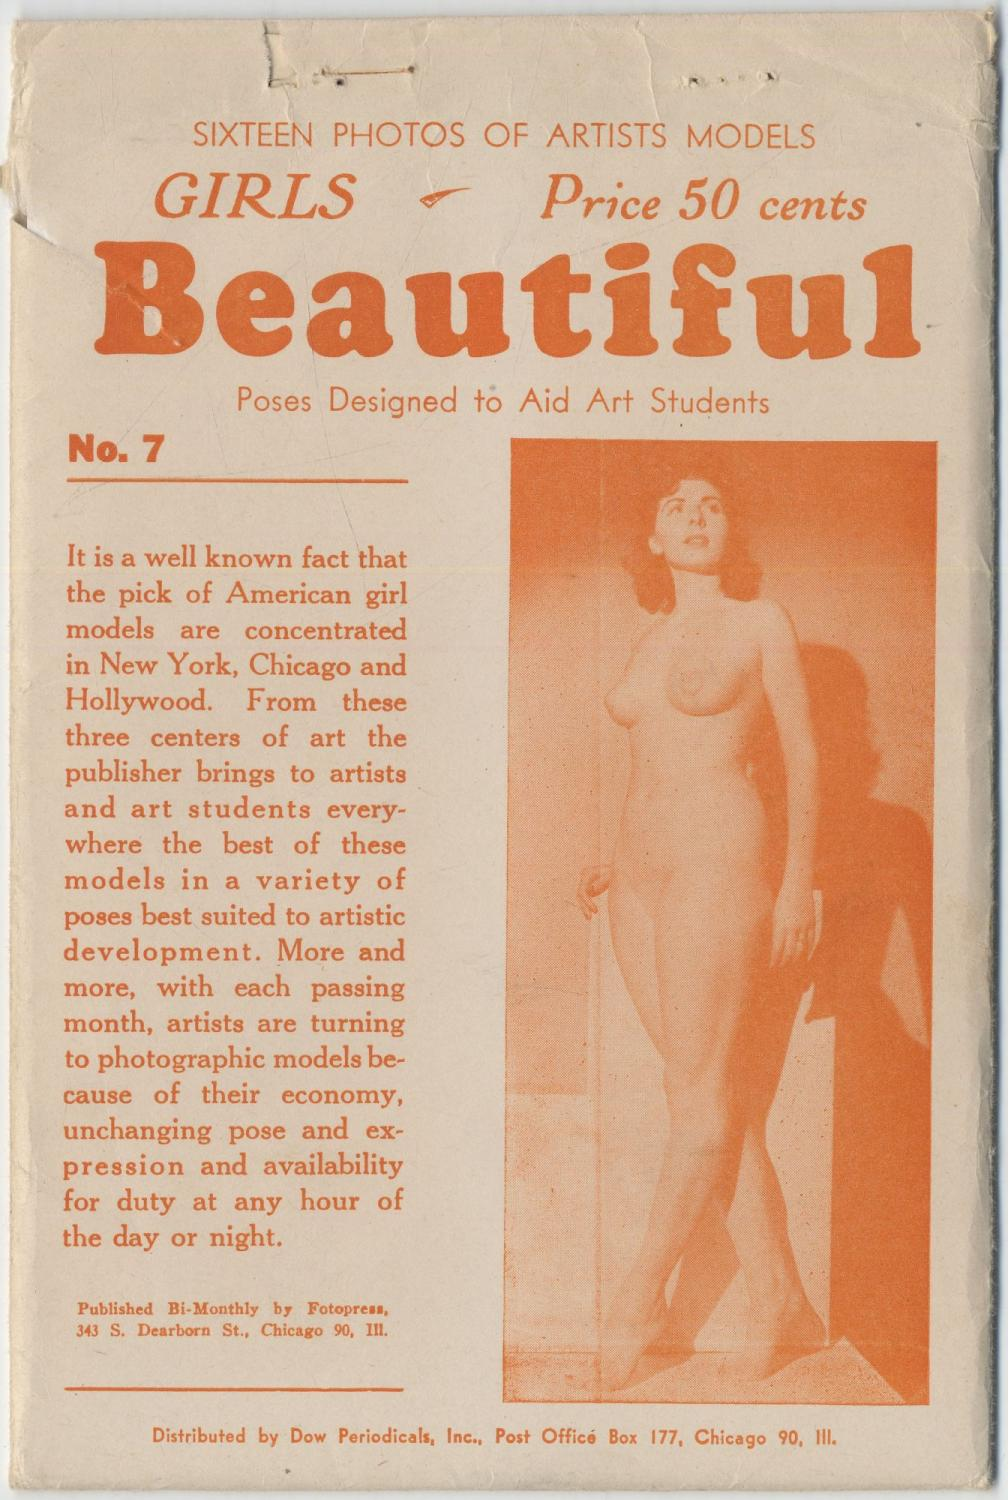 Sixteen Photos of Artists Models. Girls Beautiful Poses Designed to Aid Art Students. No. 7